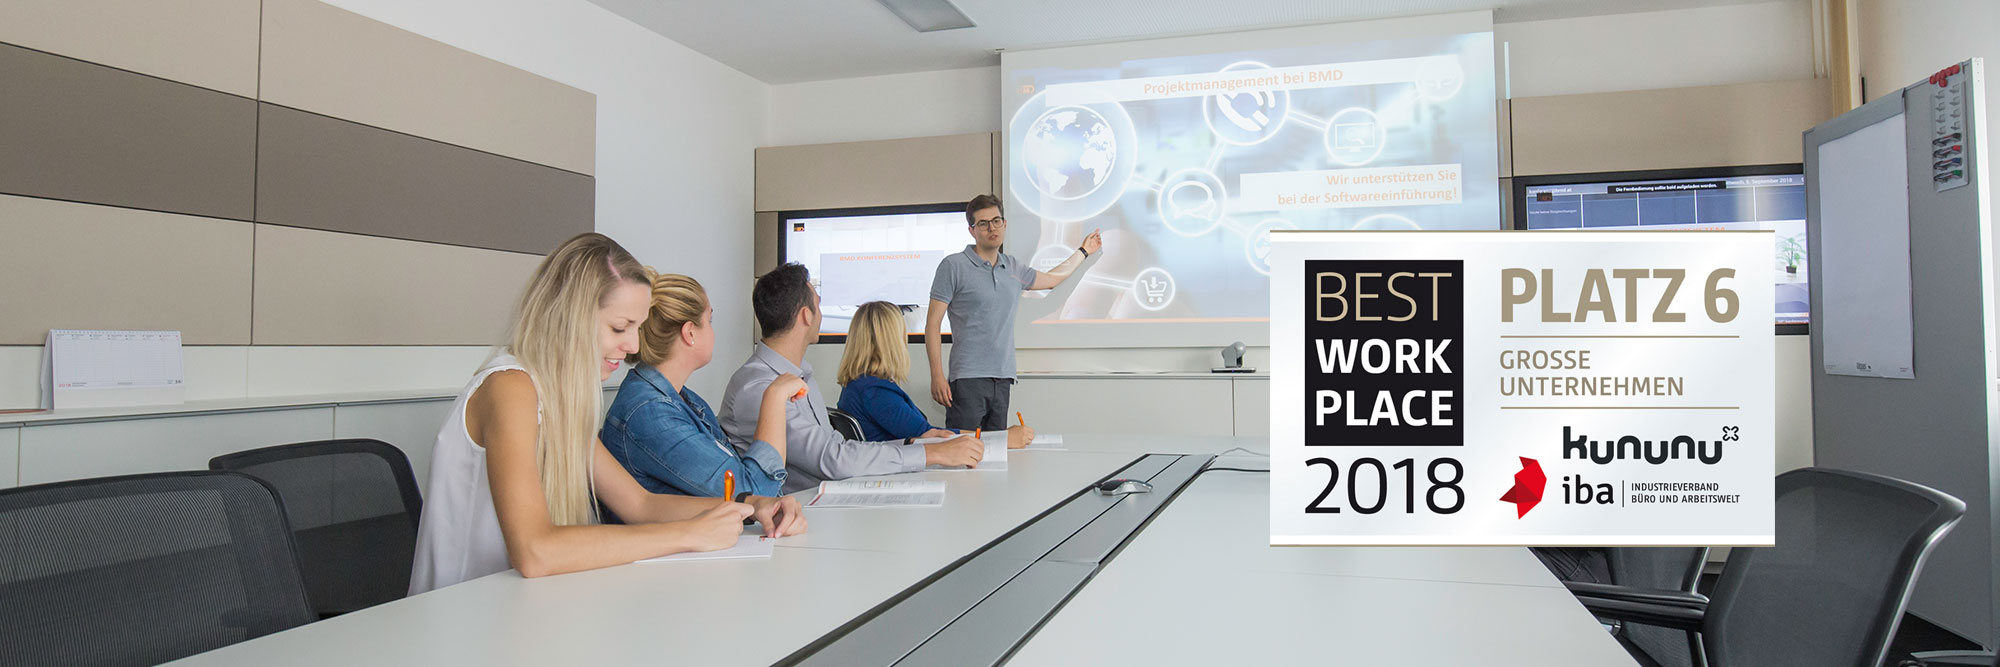 Best Workplace 2018 - BMD unter den Top 6